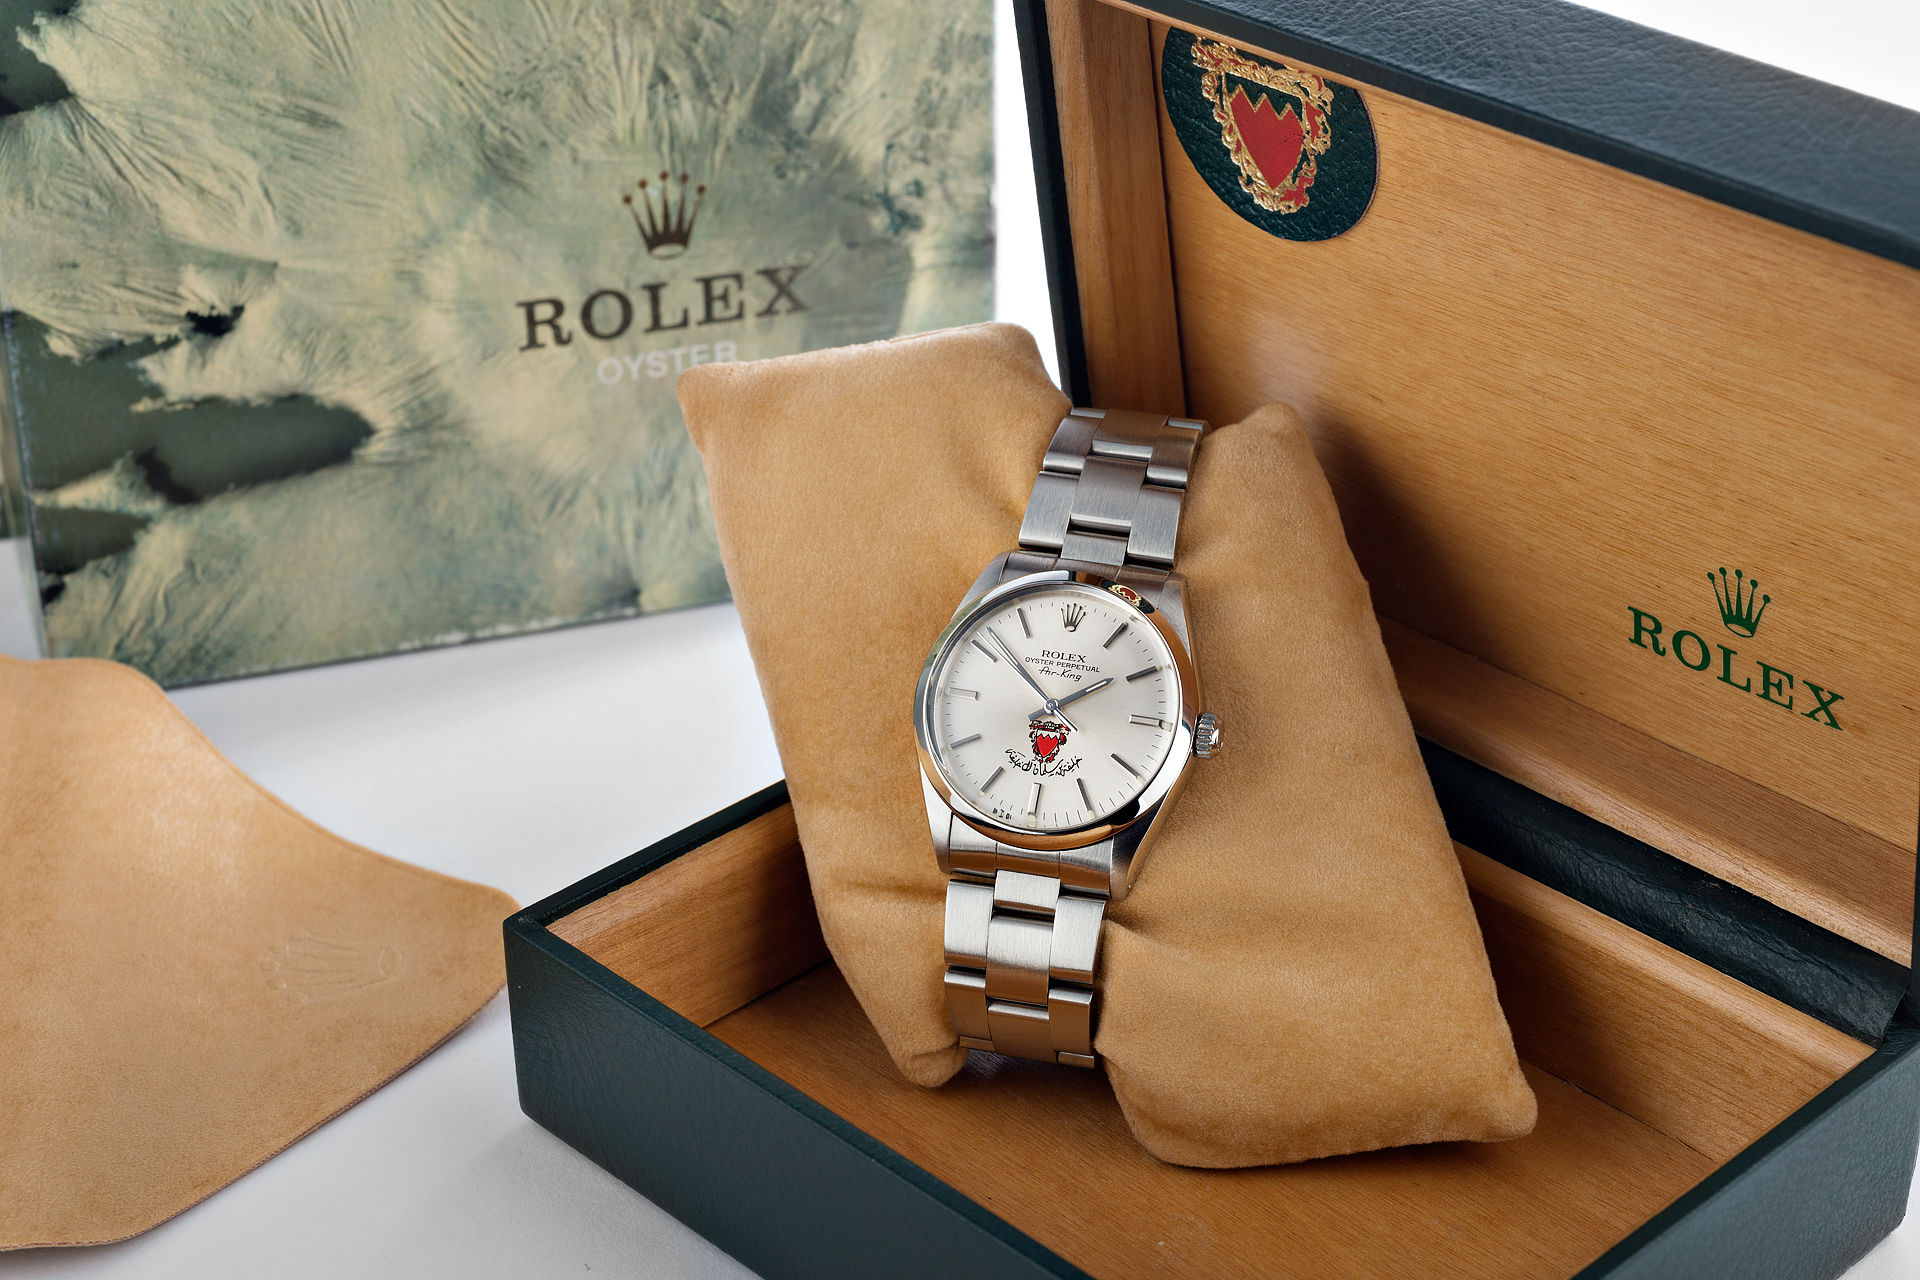 ref 5500 | Vintage - Crested Box | Rolex Air-King